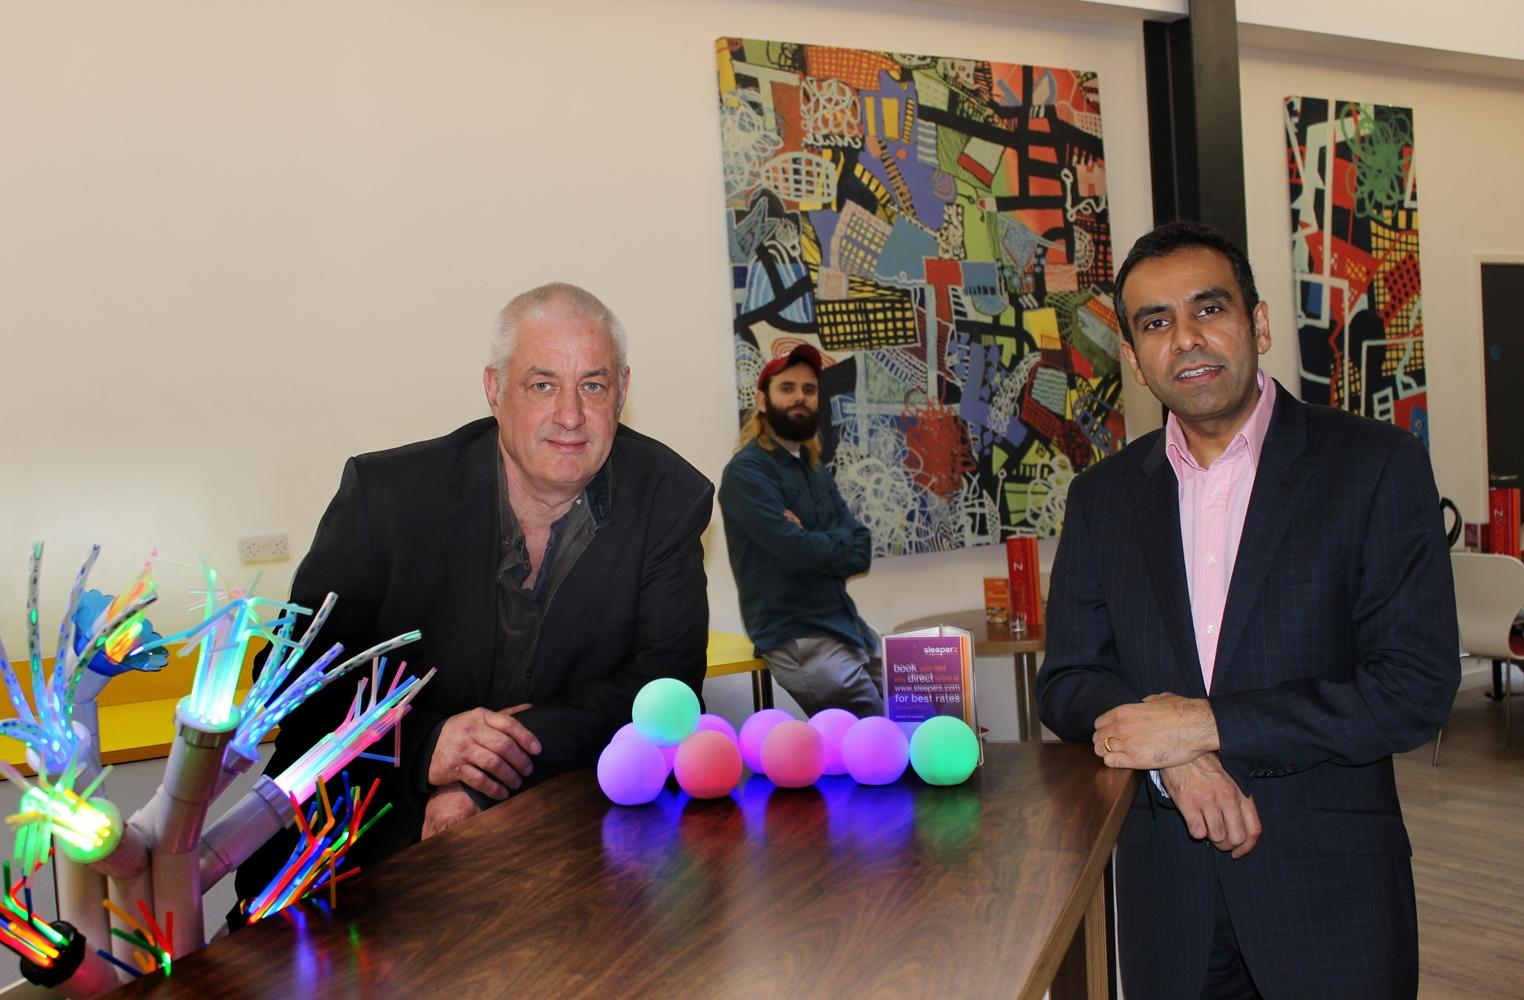 Artist Mick Stephenson, Empty Shop's Carlo Viglianisi and Sleeperz Hotel's Javeed Anwar